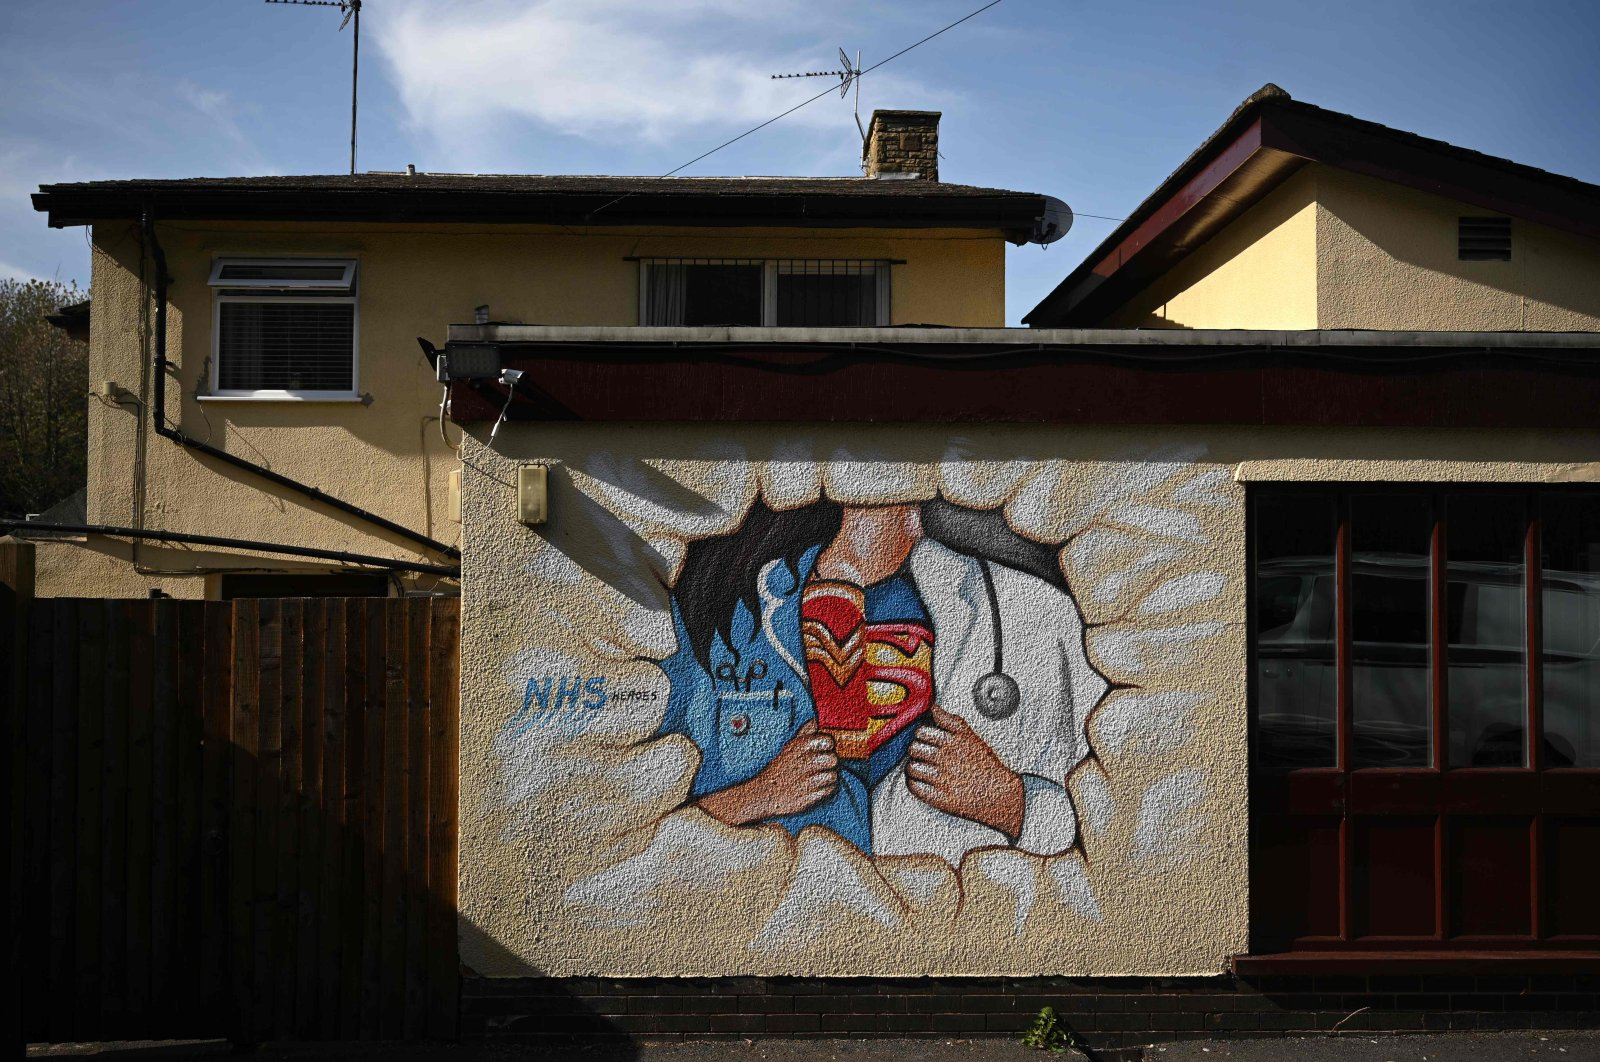 Graffiti depicts the badge of a superhero concealed under a nurse's and doctor's uniform in homage to the efforts of NHS staff during the coronavirus crisis on a wall in Pontefract, northern England, April 14, 2020. (AFP Photo)